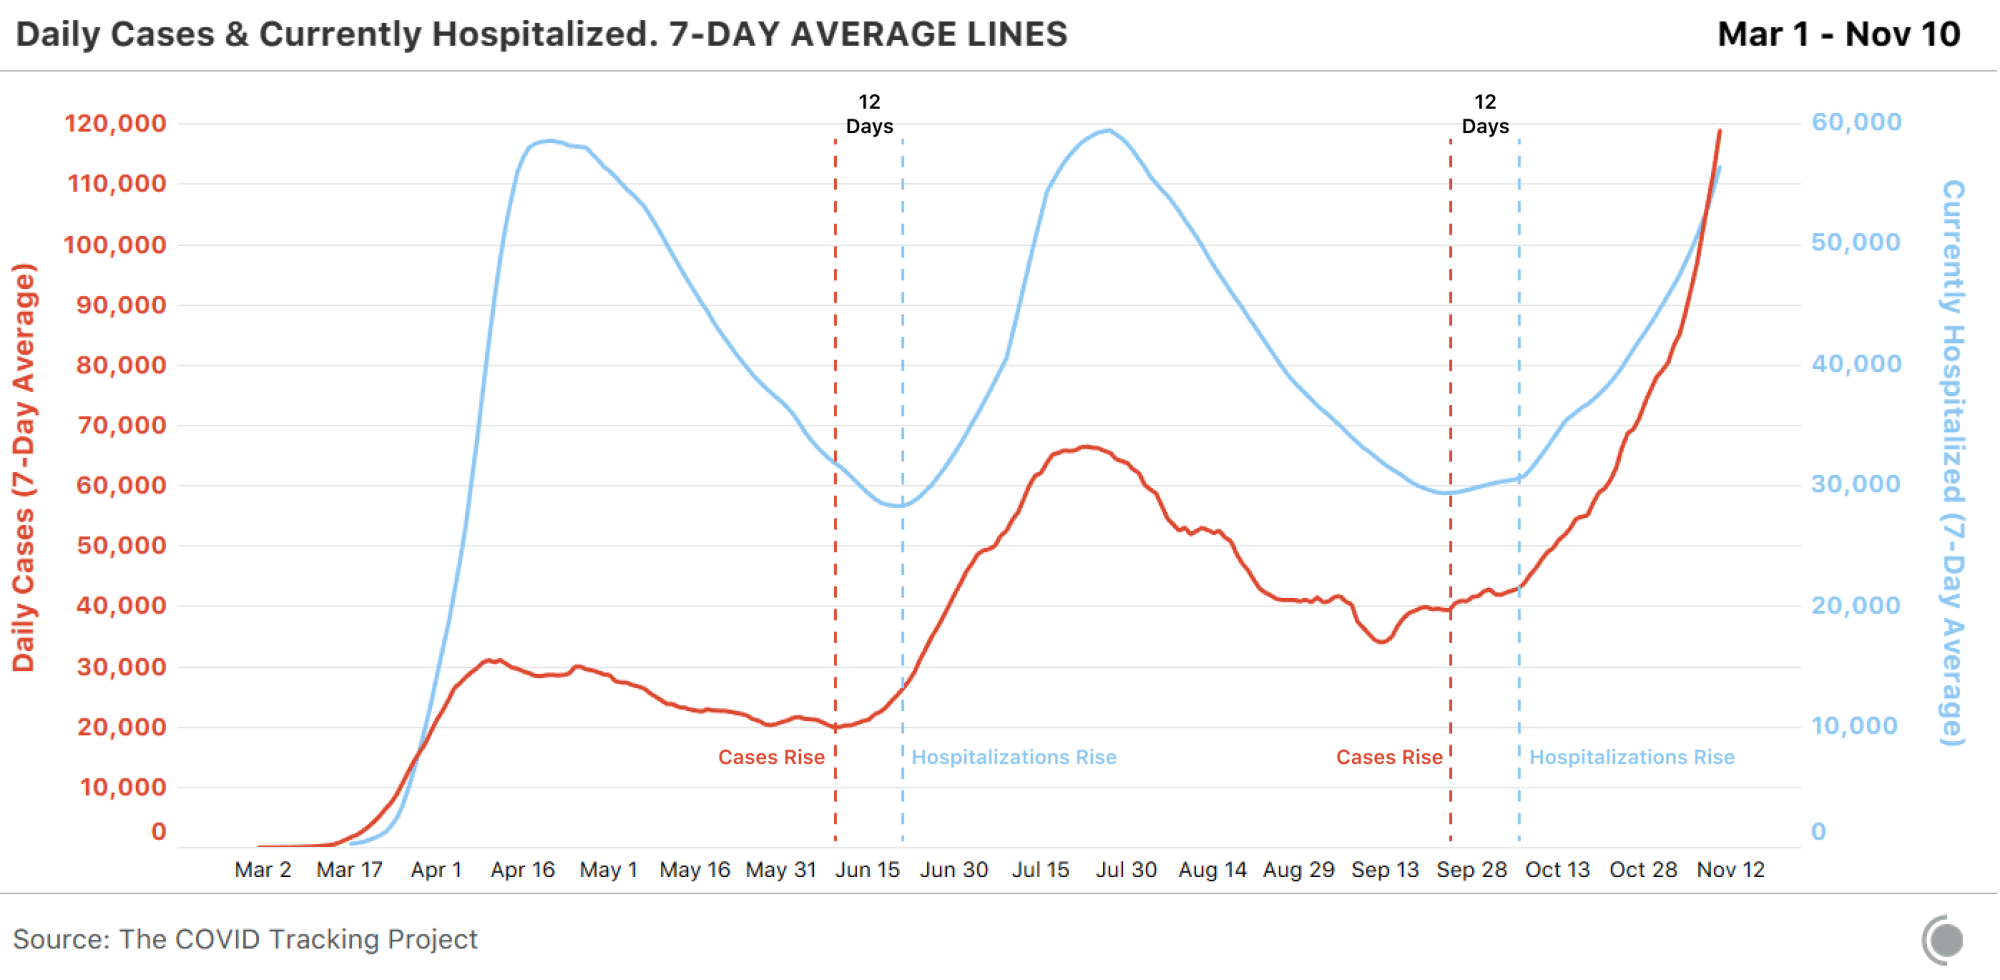 The graph compares the 7-day average lines of daily new cases and current hospitalizations from March 1 through November 10. The comparison demonstrates that there is a correlation between cases and hospitalizations, where hospitalizations begin to rise approximately 12 days after cases start trending upwards.